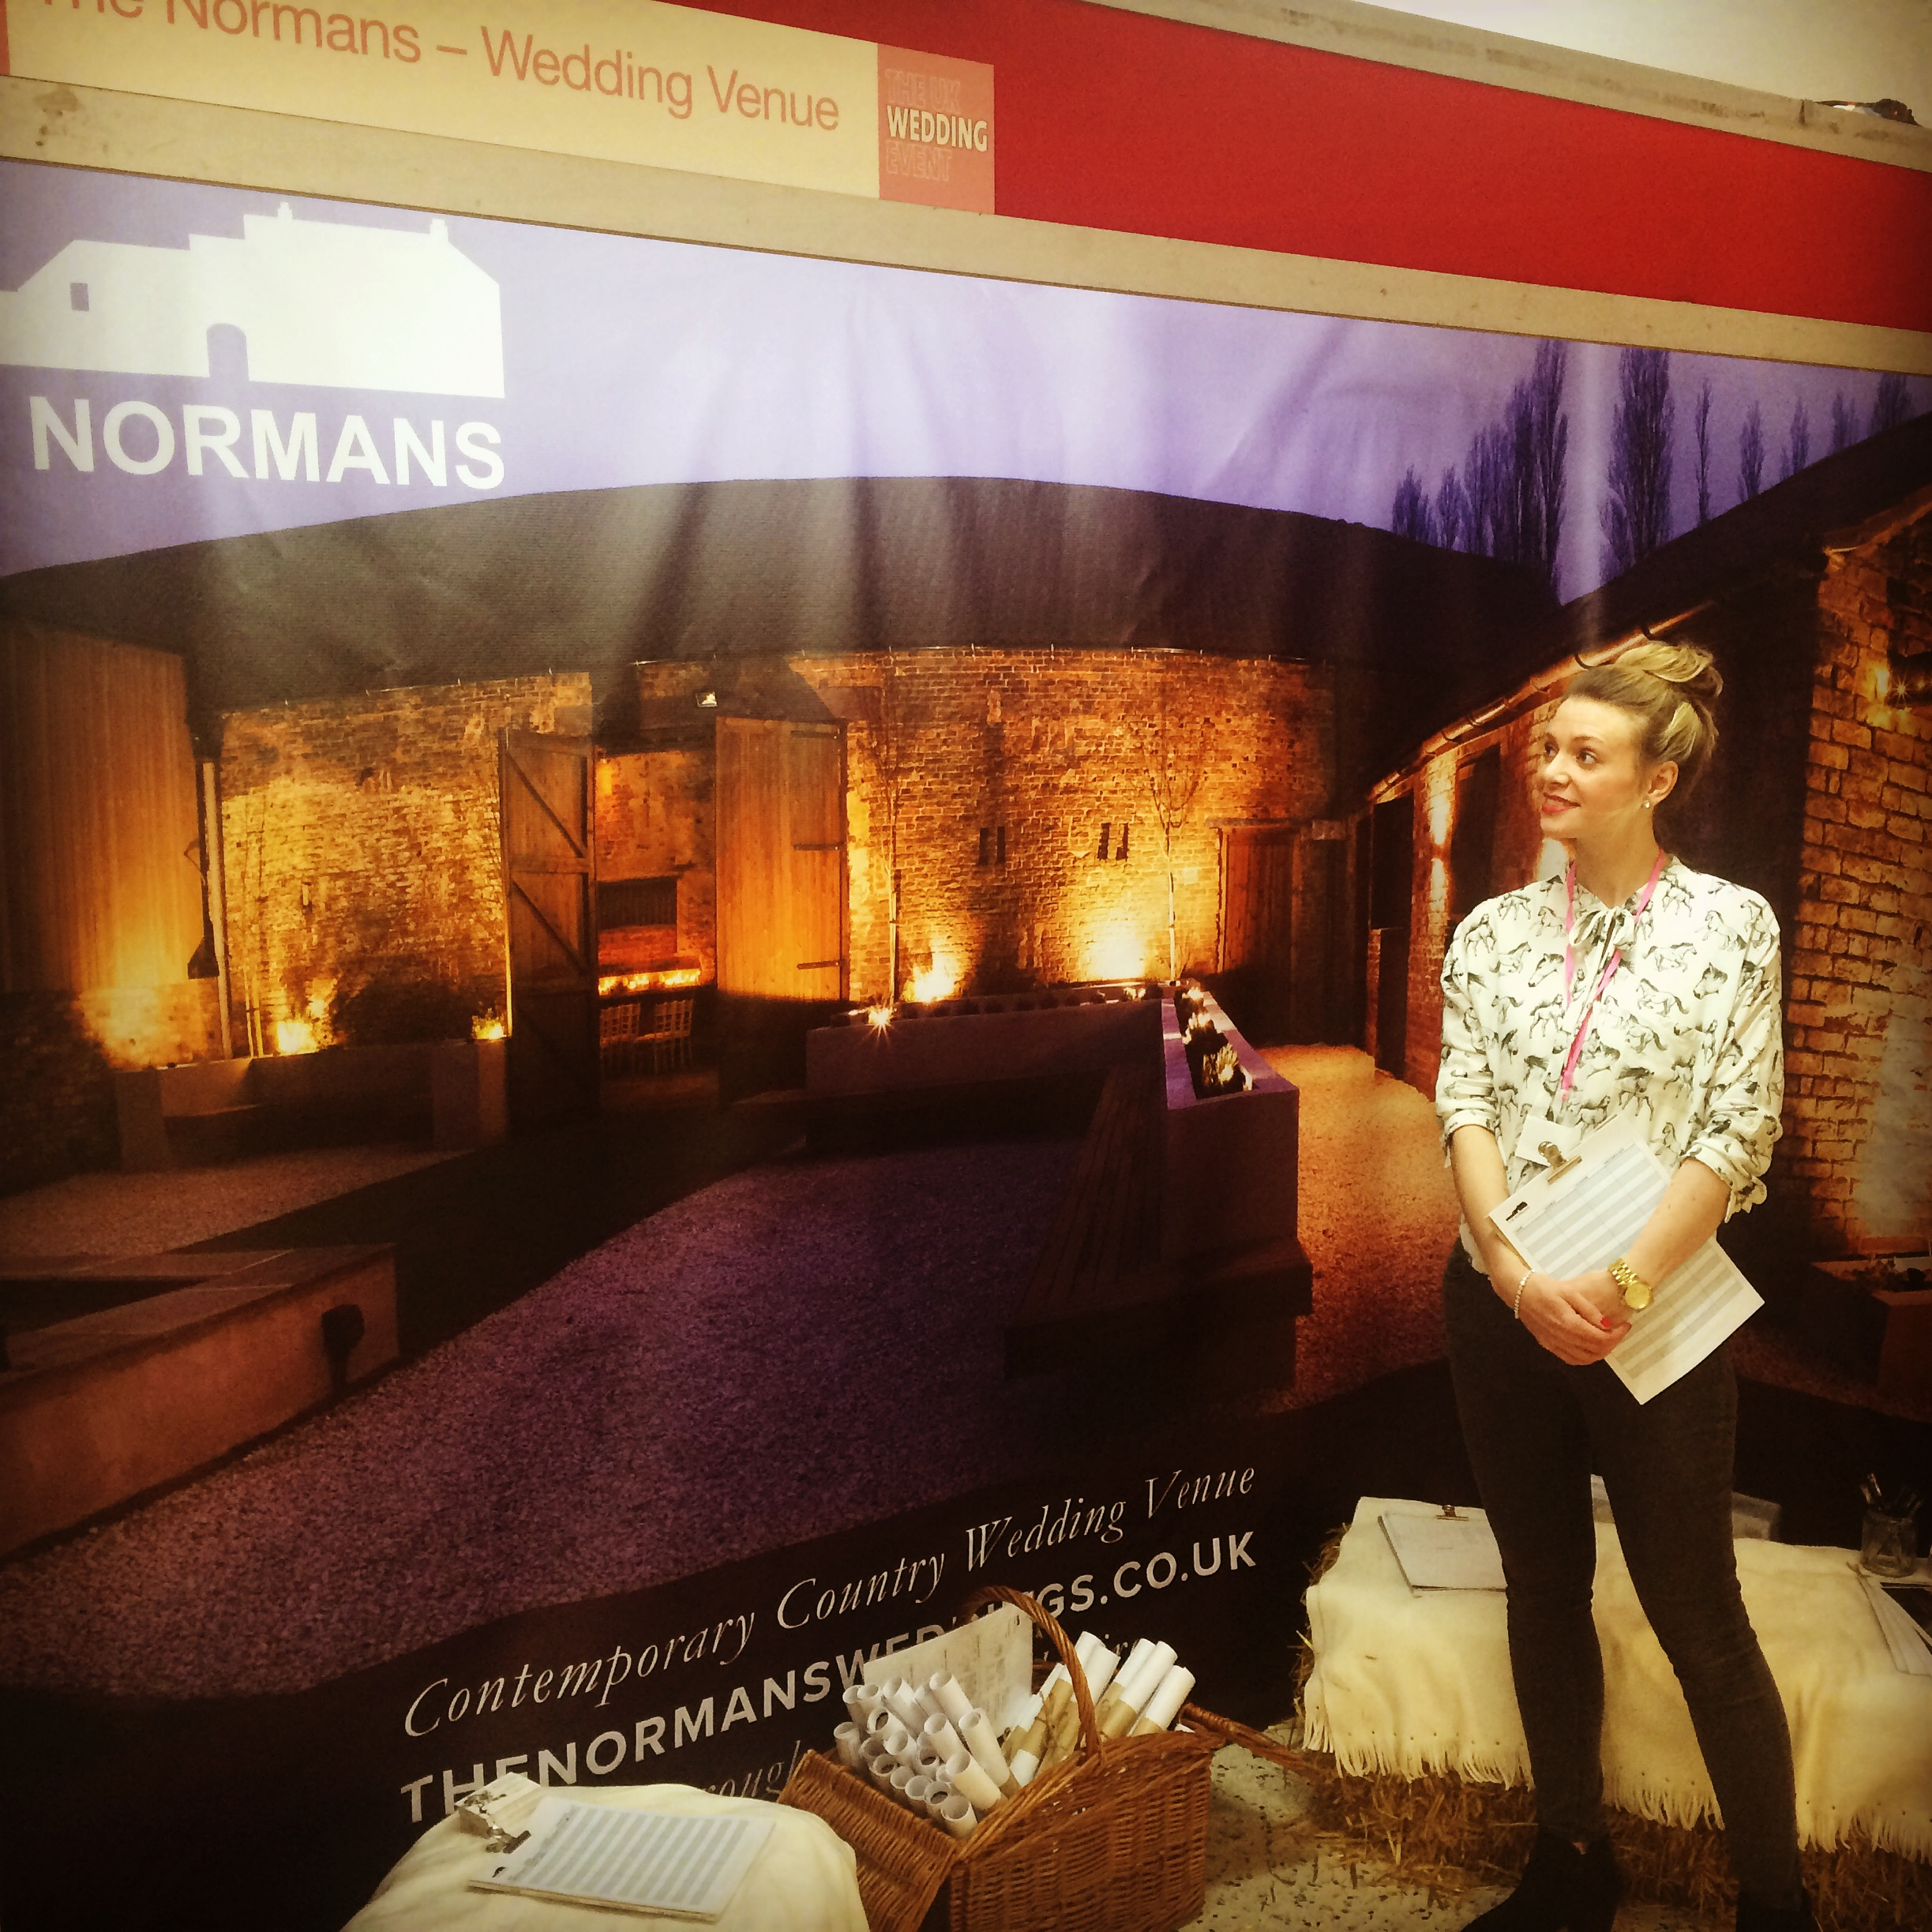 Laura loitering at The Normans wedding venue stall at the UK Wedding Event, York Racecourse